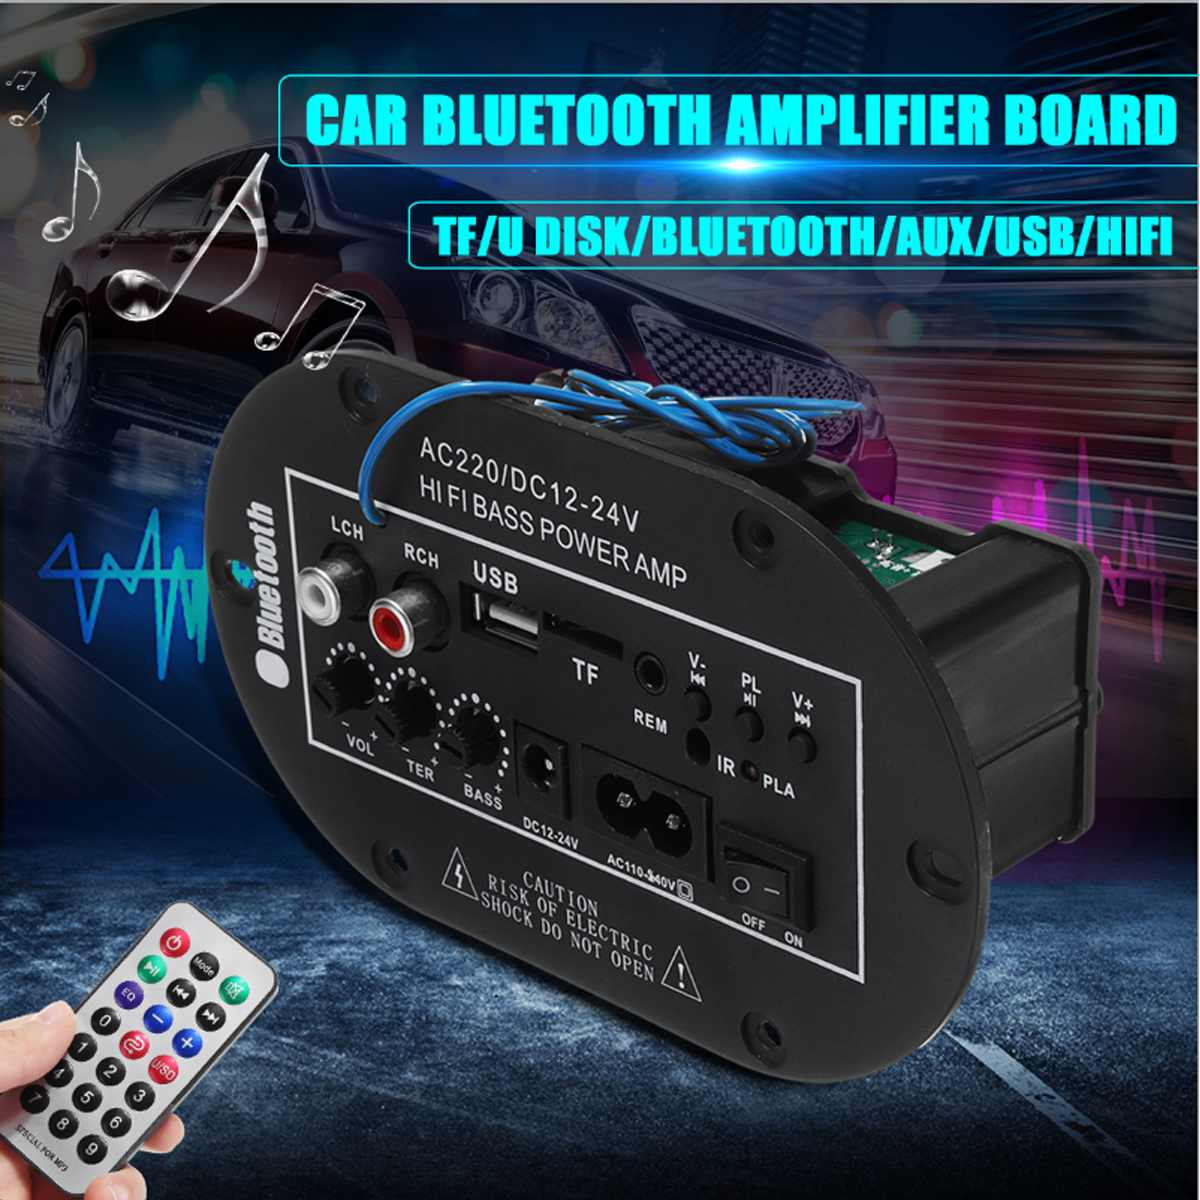 High Power Bluetooth Subwoofer Hi-Fi Bass Amplifier Board For Home And Car MP3